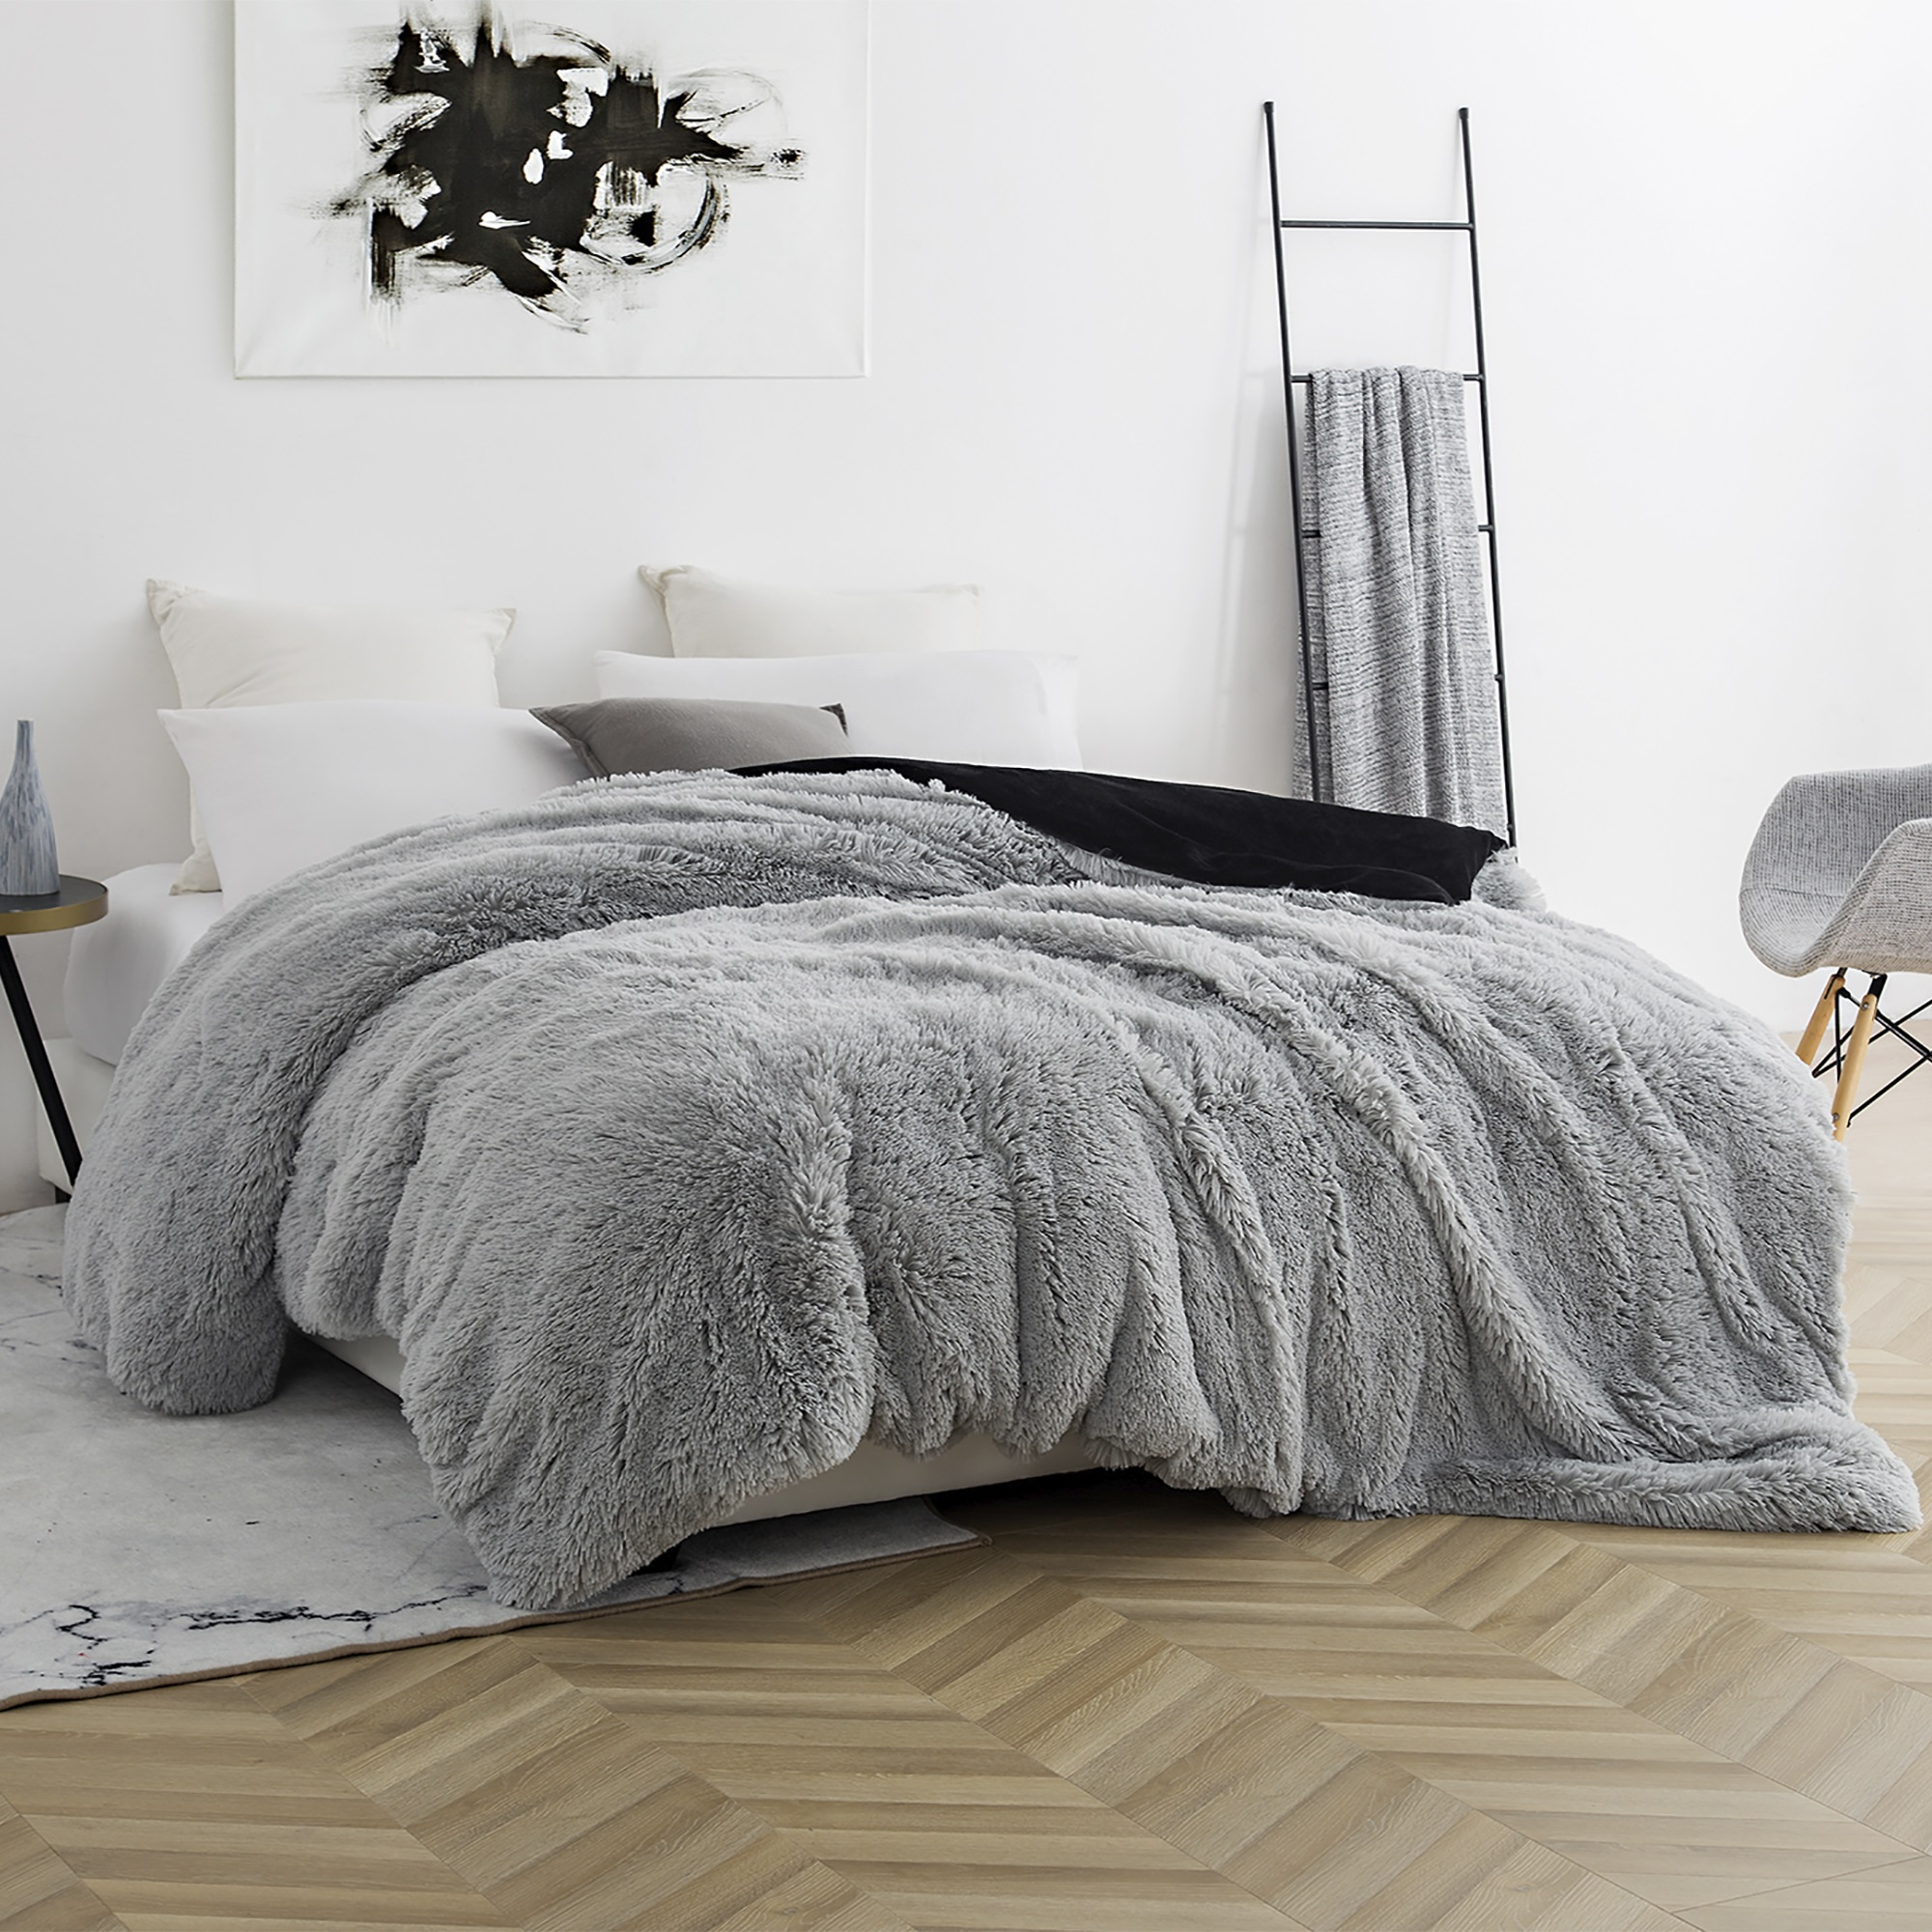 Coma Inducer Duvet Cover - Are You Kidding? - Glacier Gray/Black